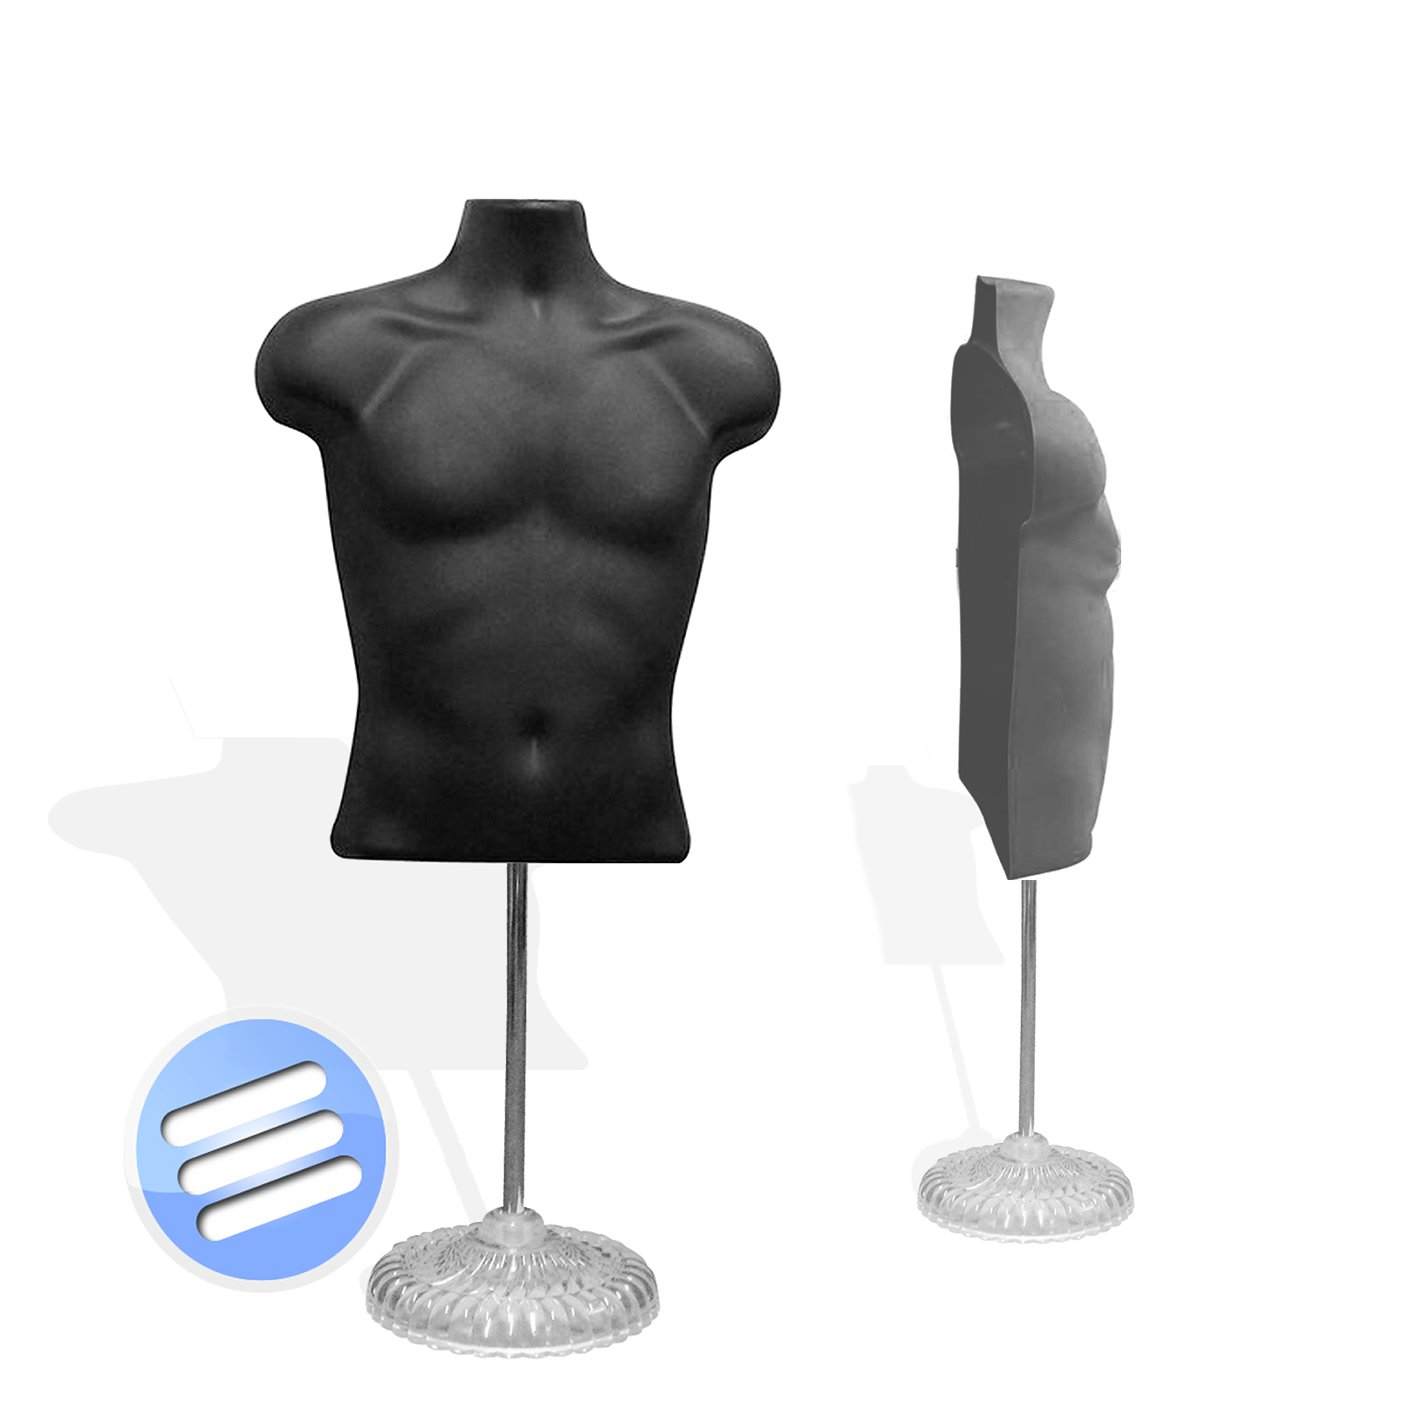 Half Male Body Form Torso Dummy Display Bust Mannequin wth Stand ...